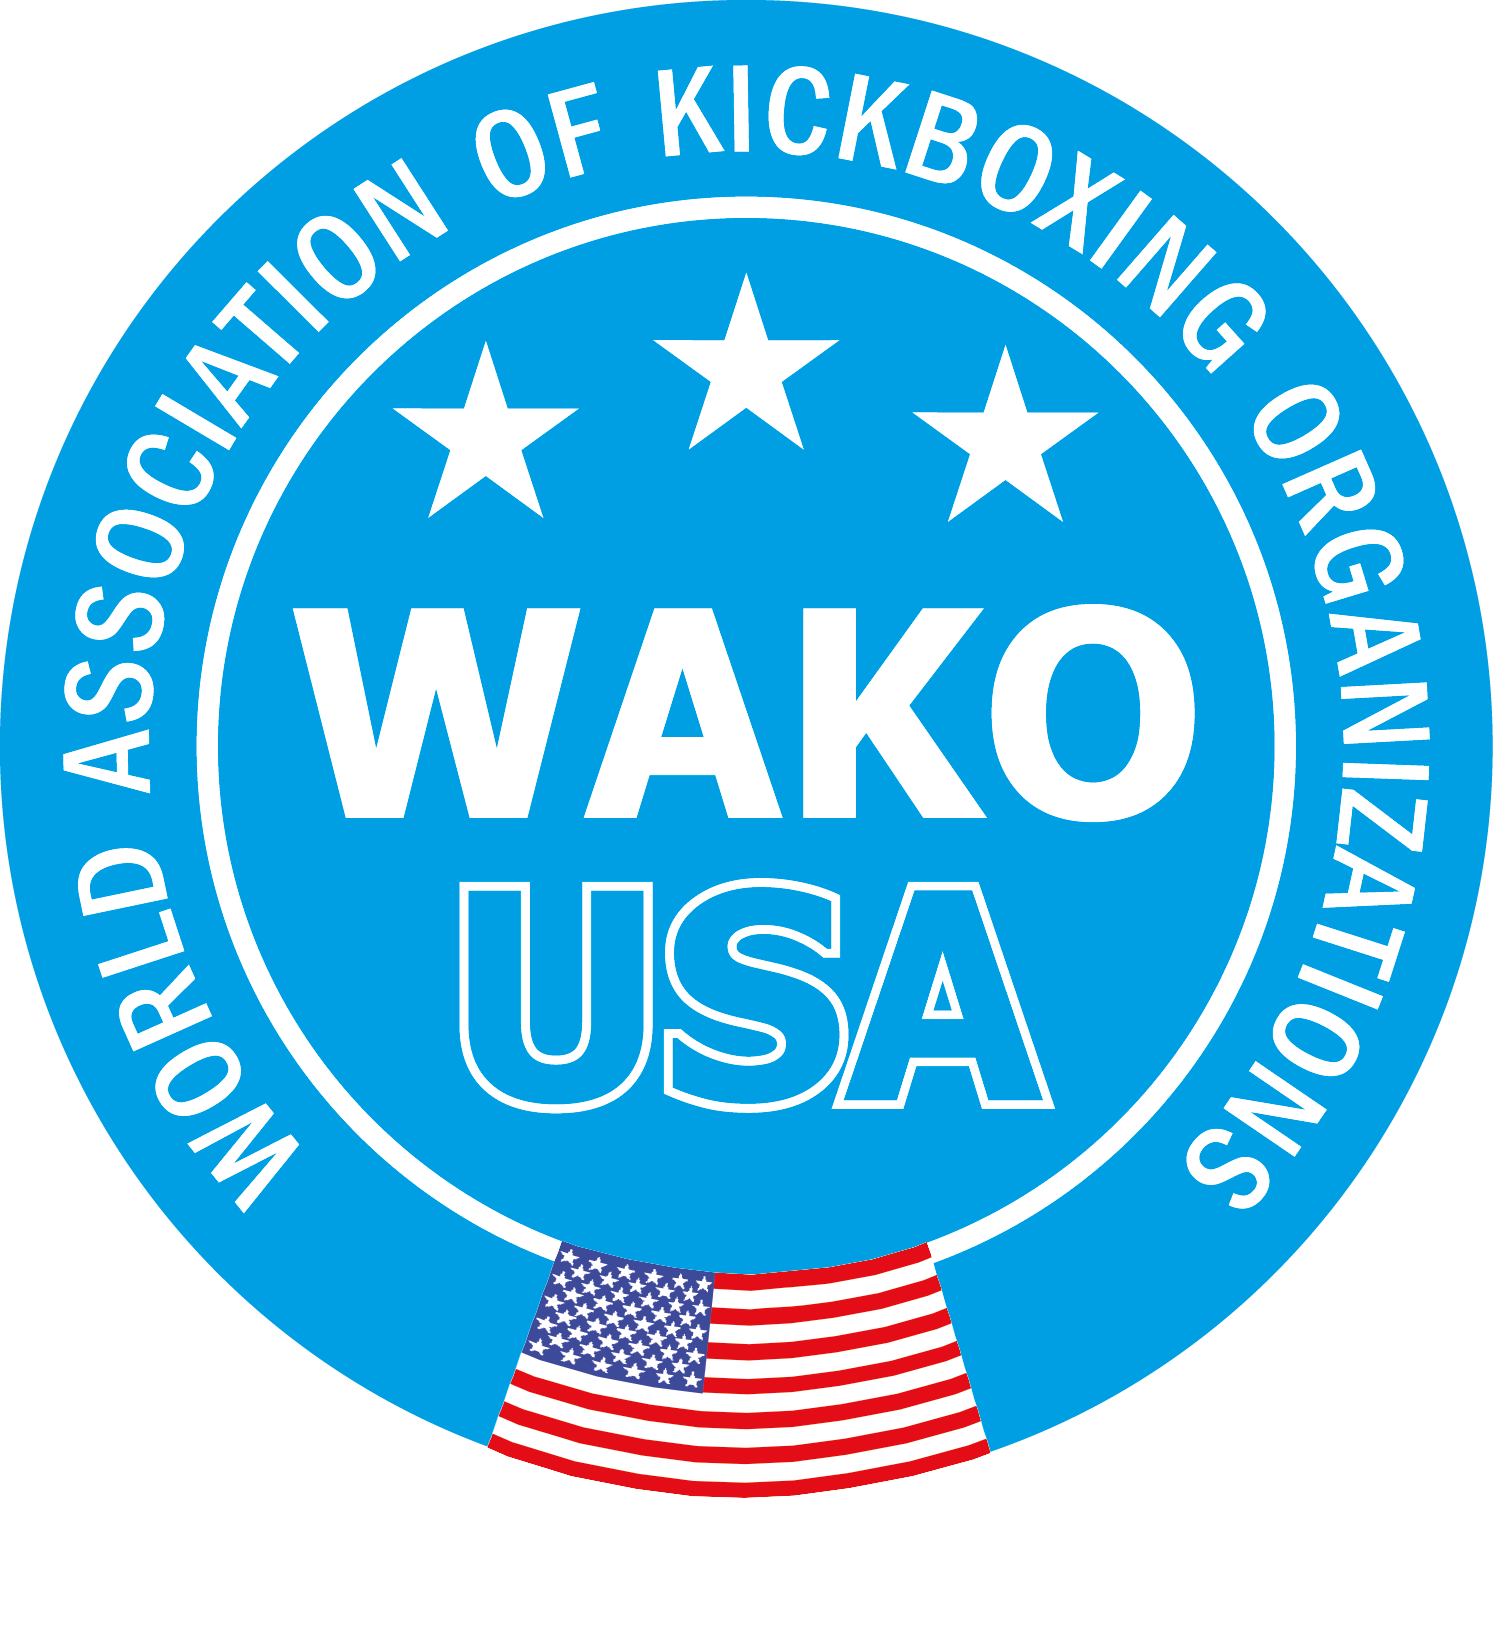 Team USA Kickboxing - GMMA is an official Team USA kickboxing training center!